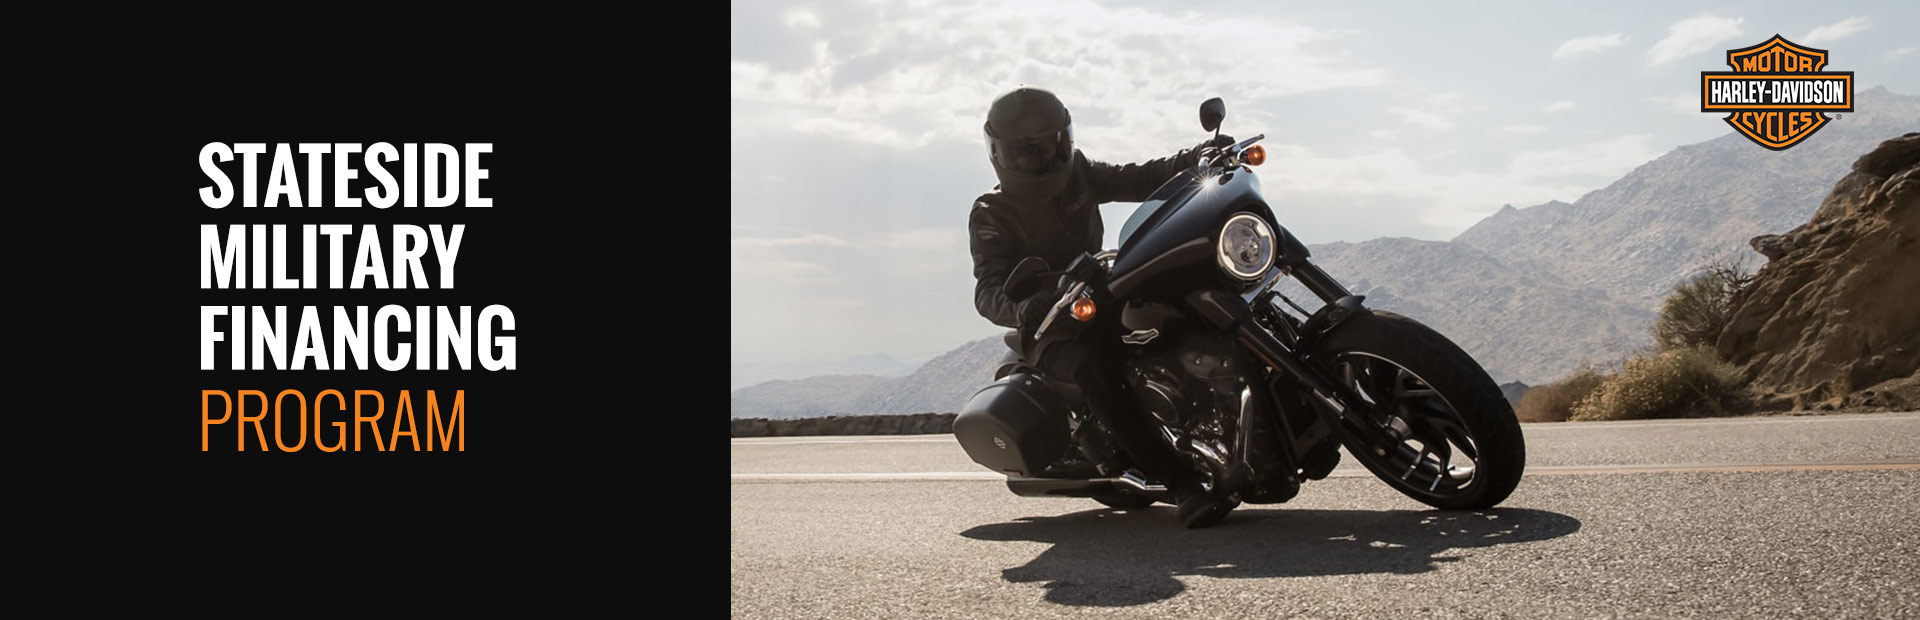 Harley-Davidson®: Stateside Military Financing Program